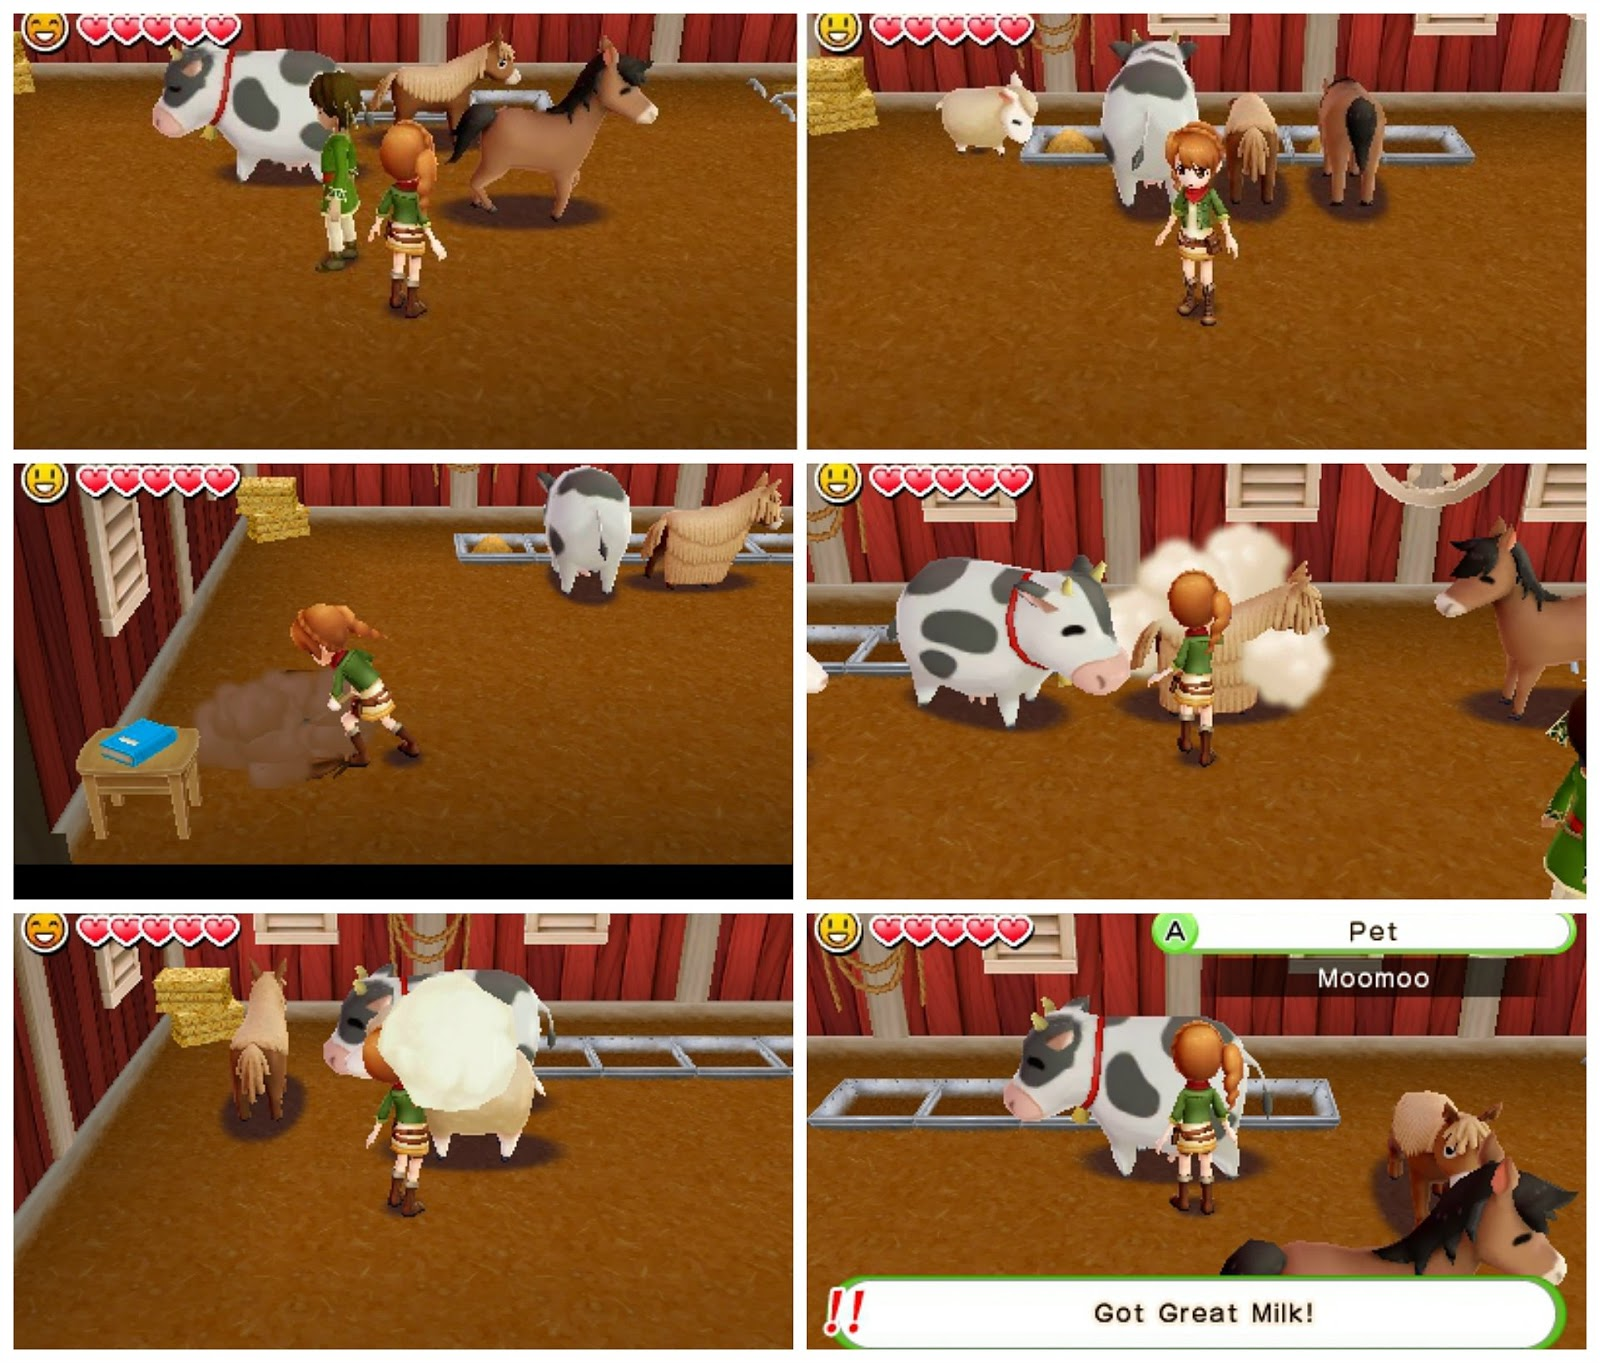 Harvest Moon Skytree Village, Nintendo 3DS, farm simulation game